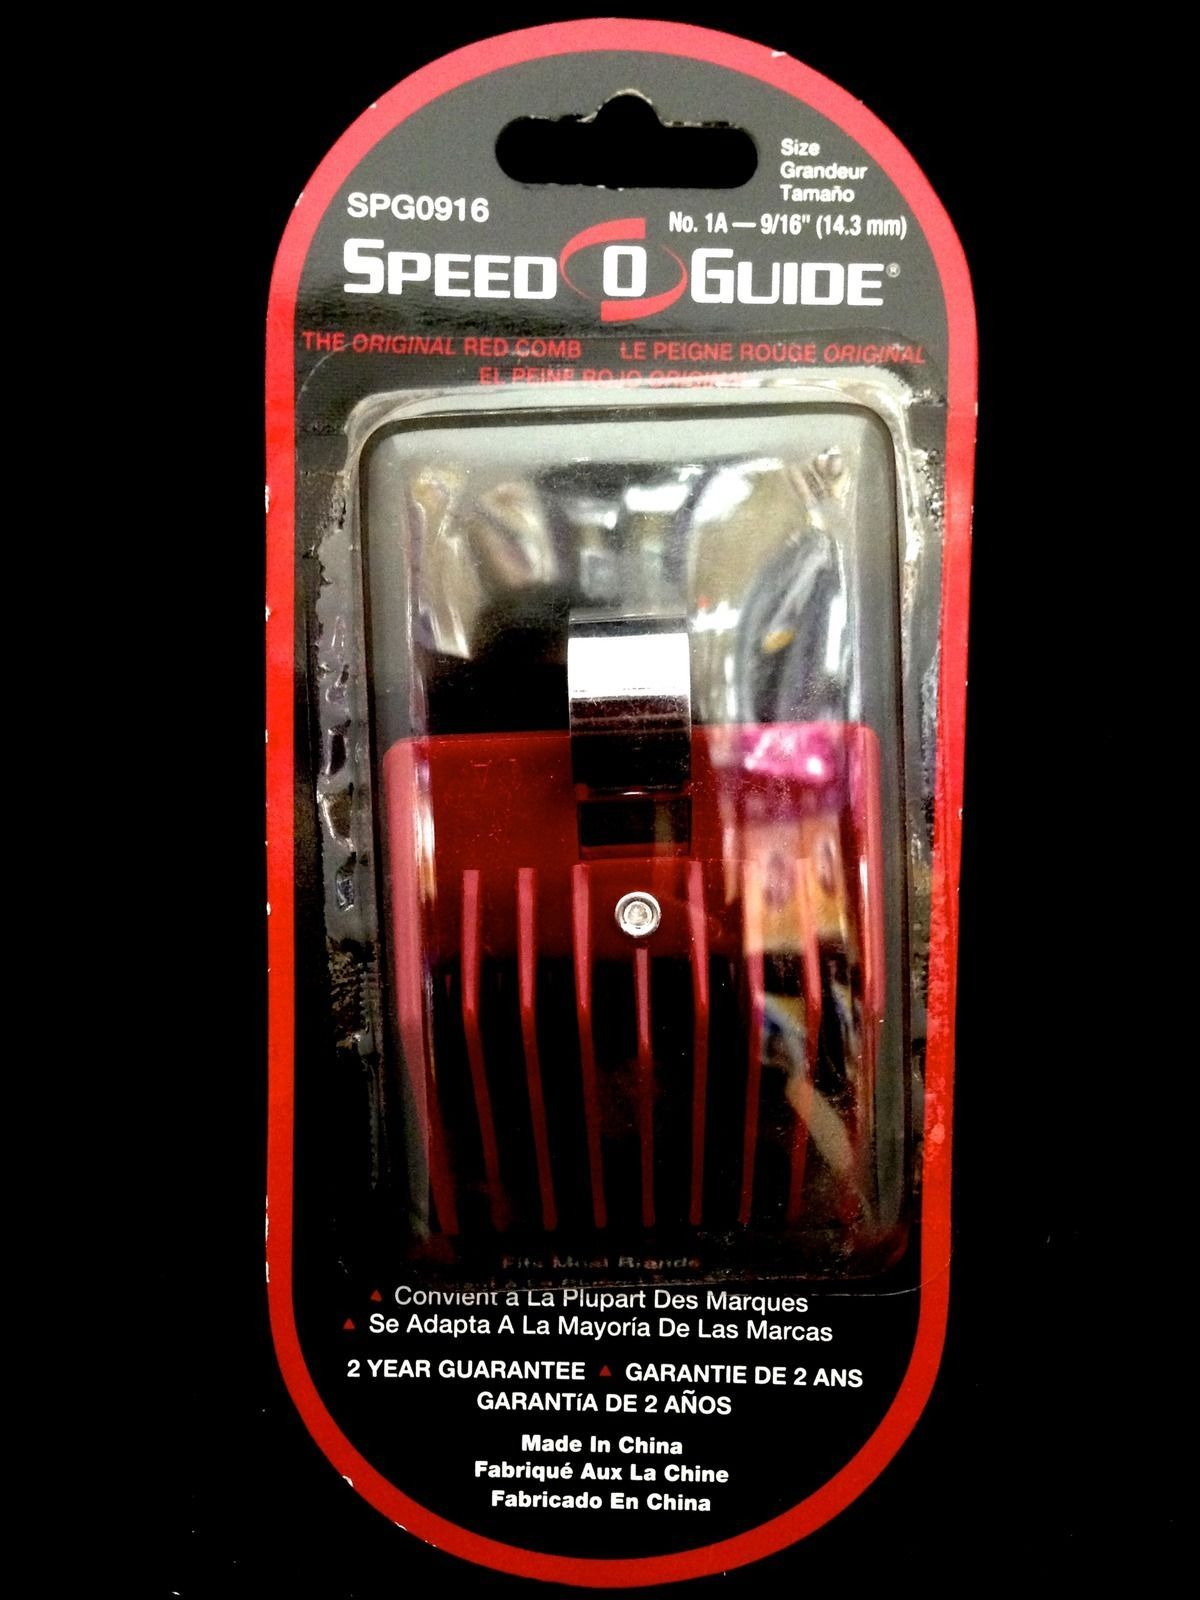 "SPEED O GUIDE THE ORIGINAL RED COMB FITS MOST BRANDS SIZE No. 2 11/16"" 17.5mm"